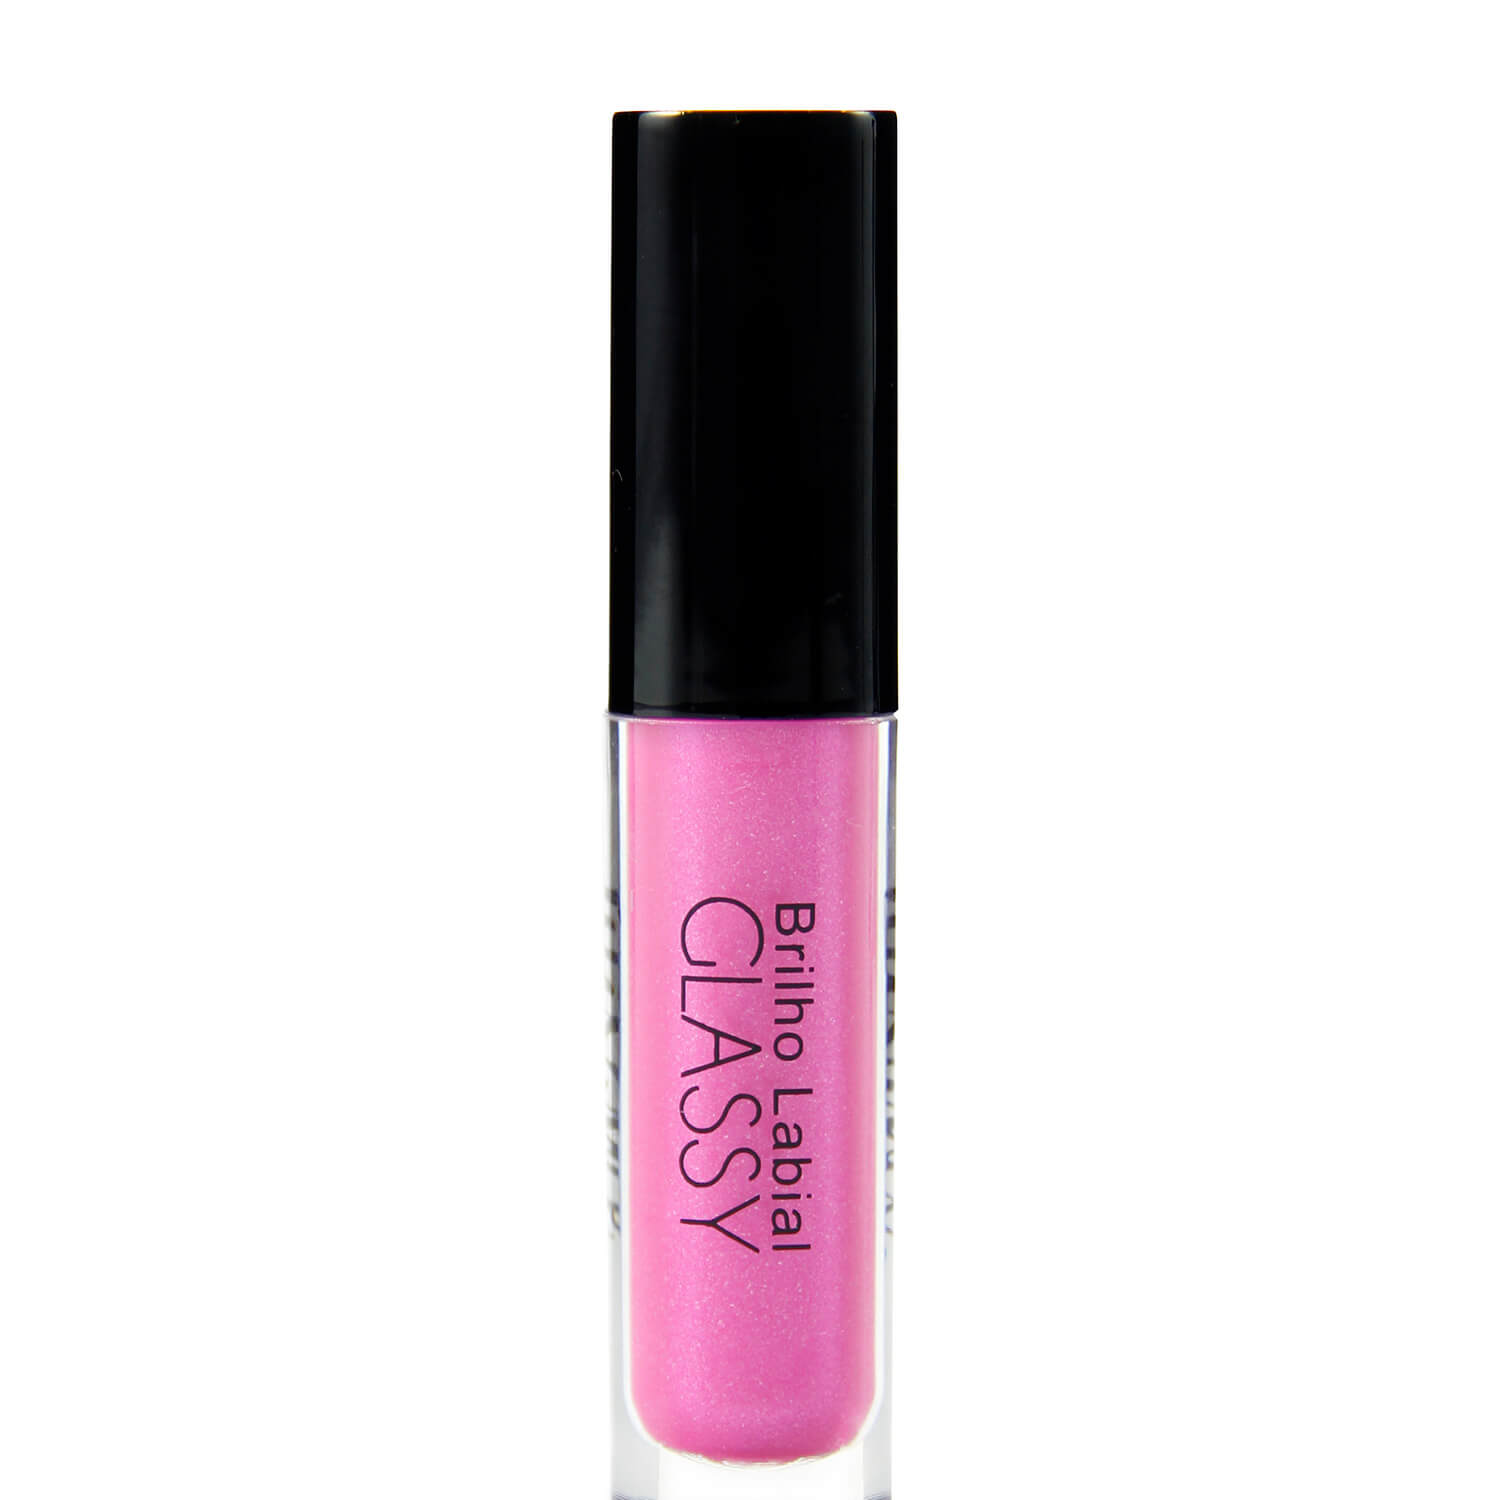 Brilho labial Glassy